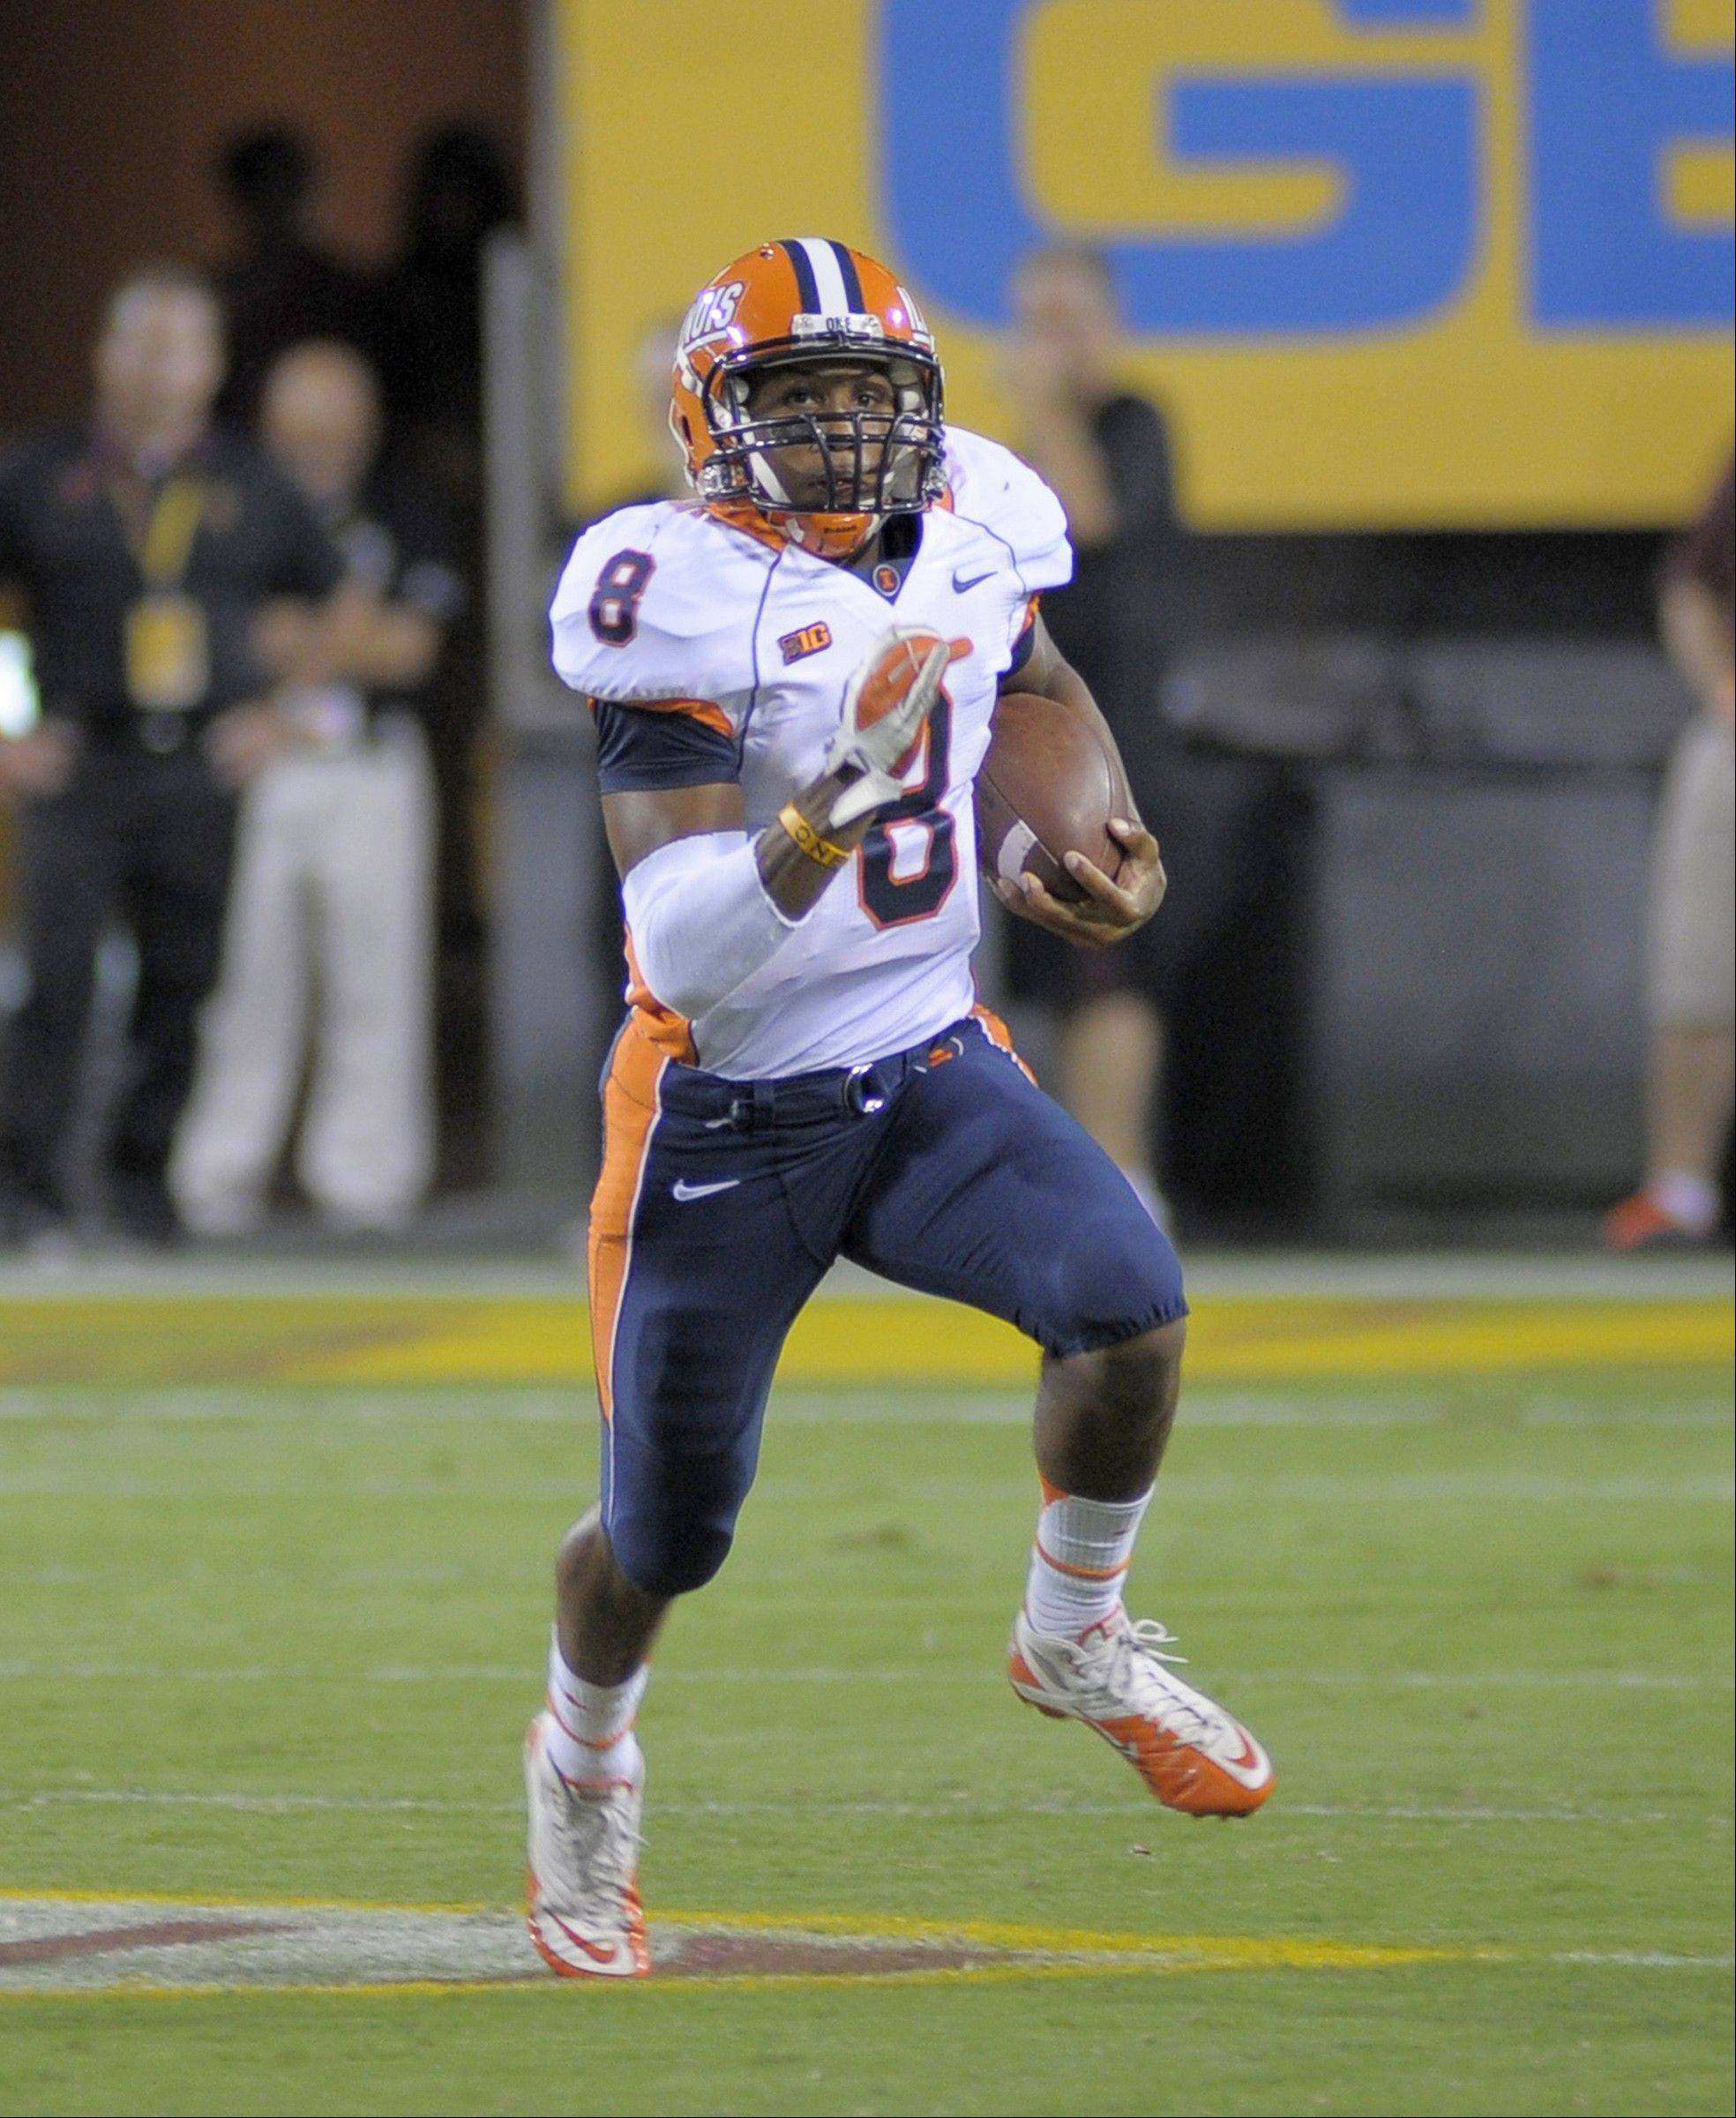 Former Prospect High School quarterback Miles Osei will be a wide receiver for the Illini this season.